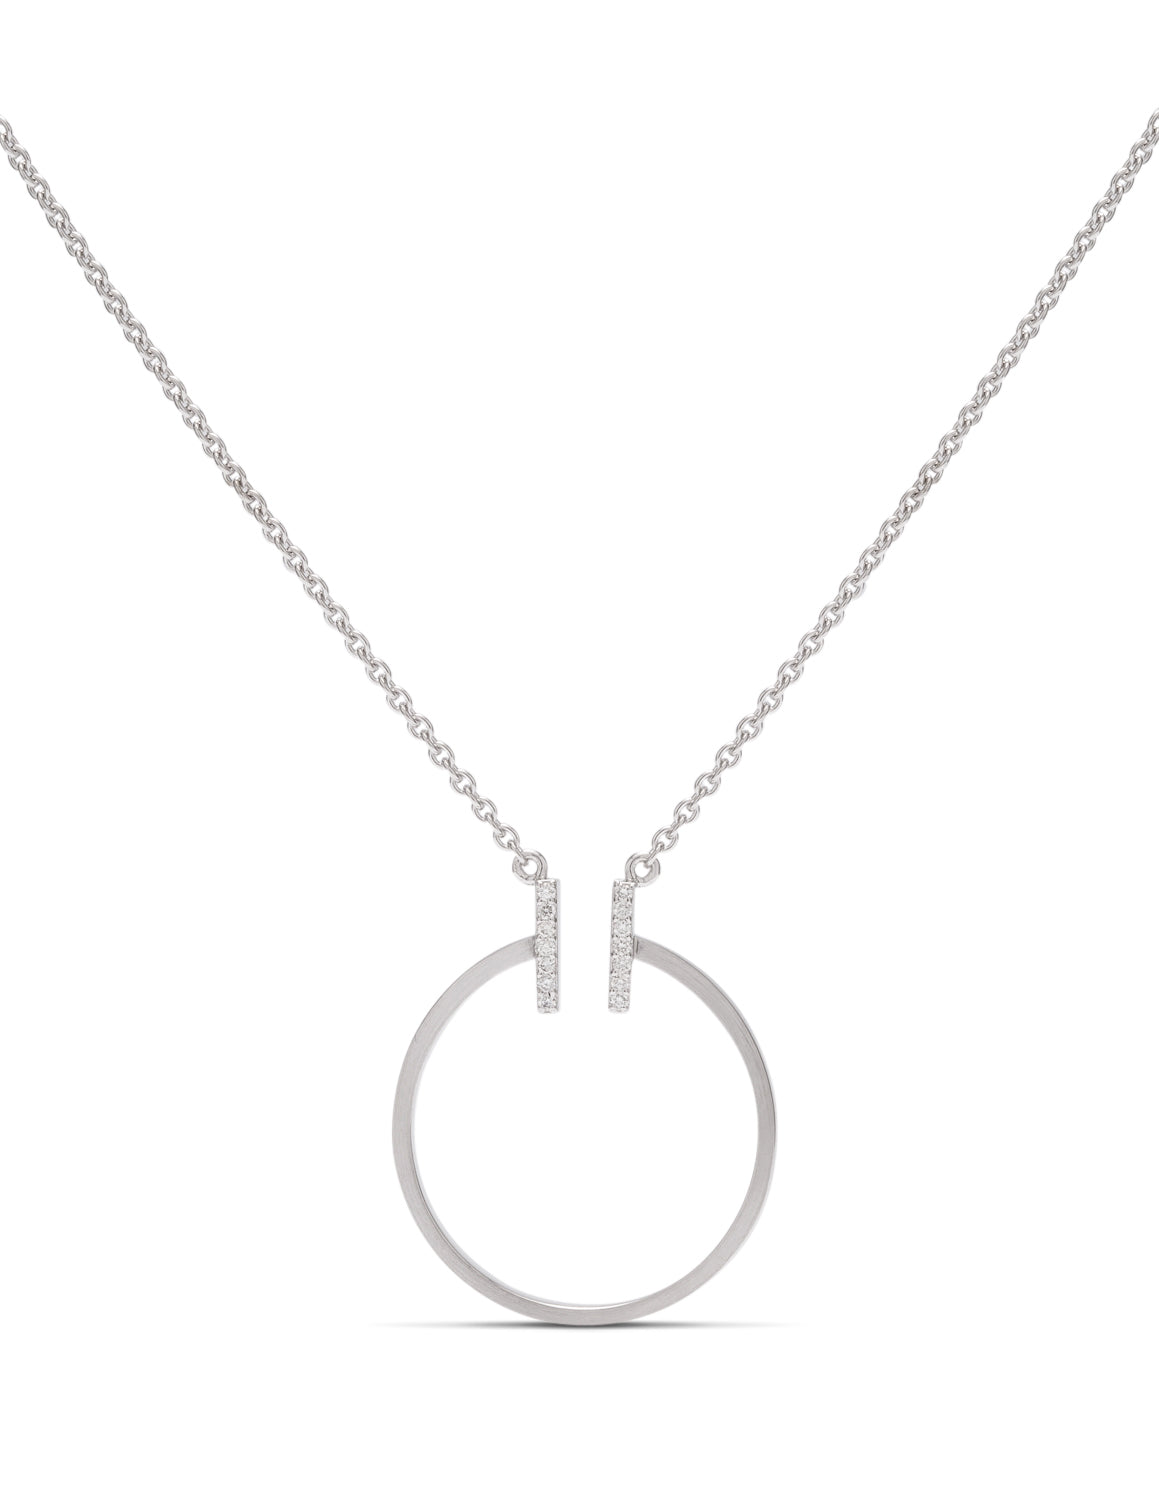 Double Bar Circle Necklace - Charles Koll Jewellers